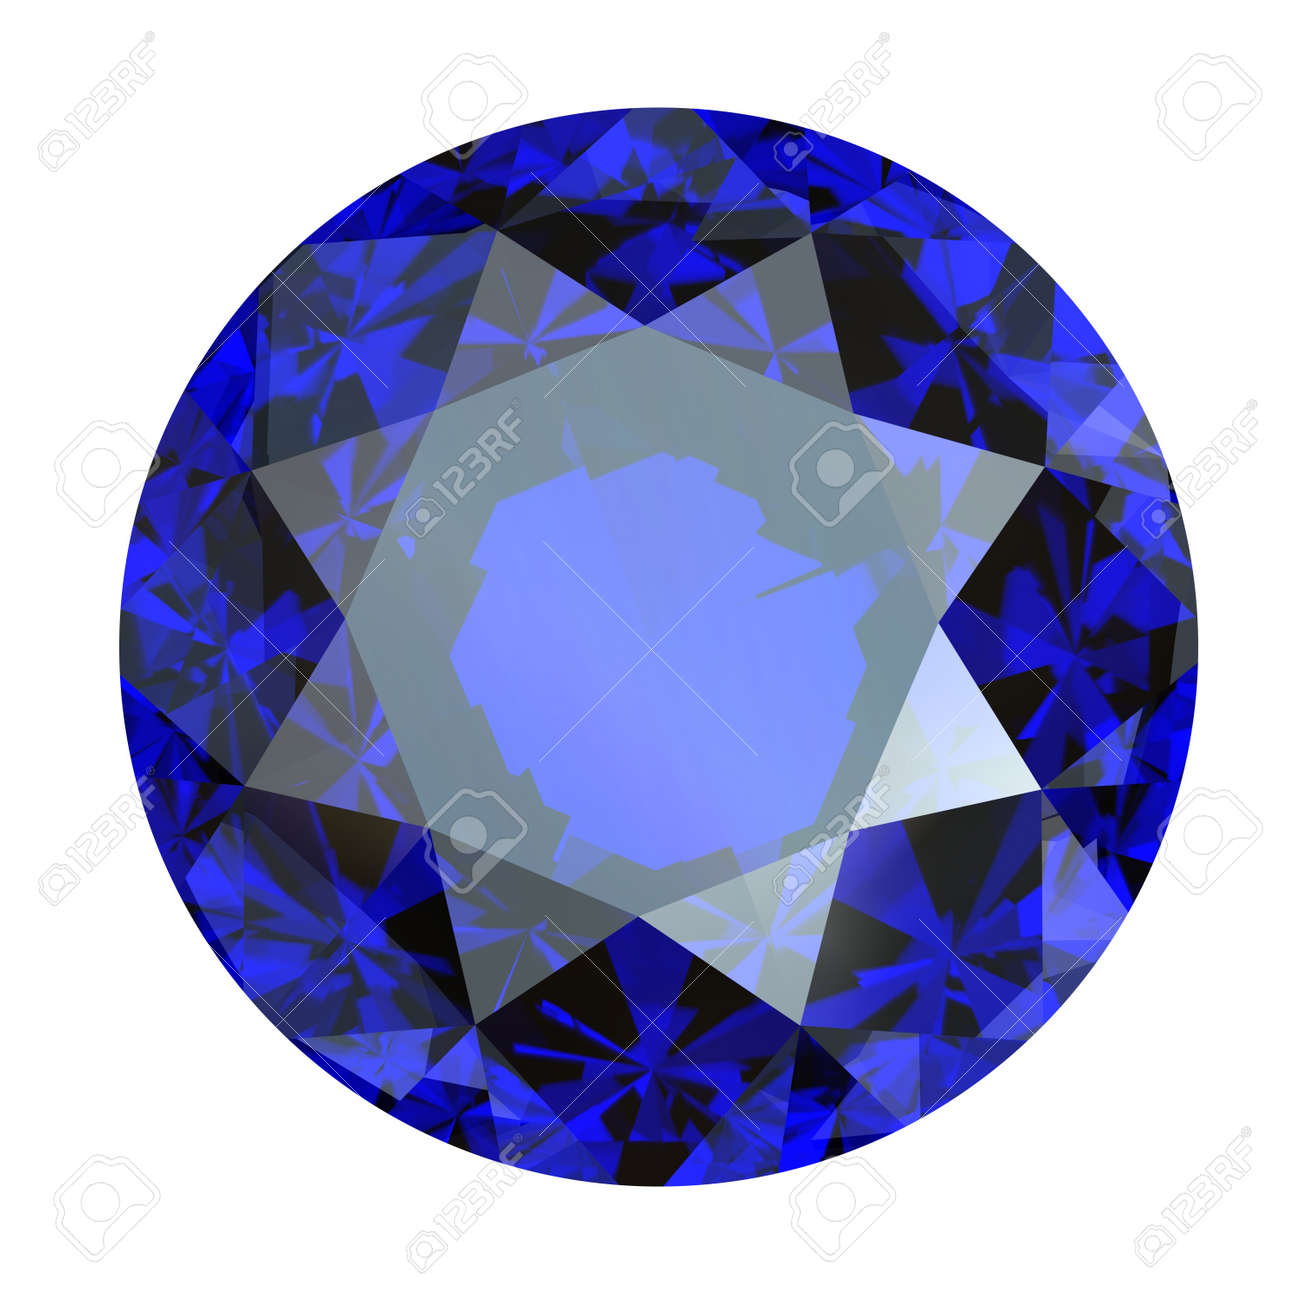 gems fan tanzanite steven by on gem art color universe